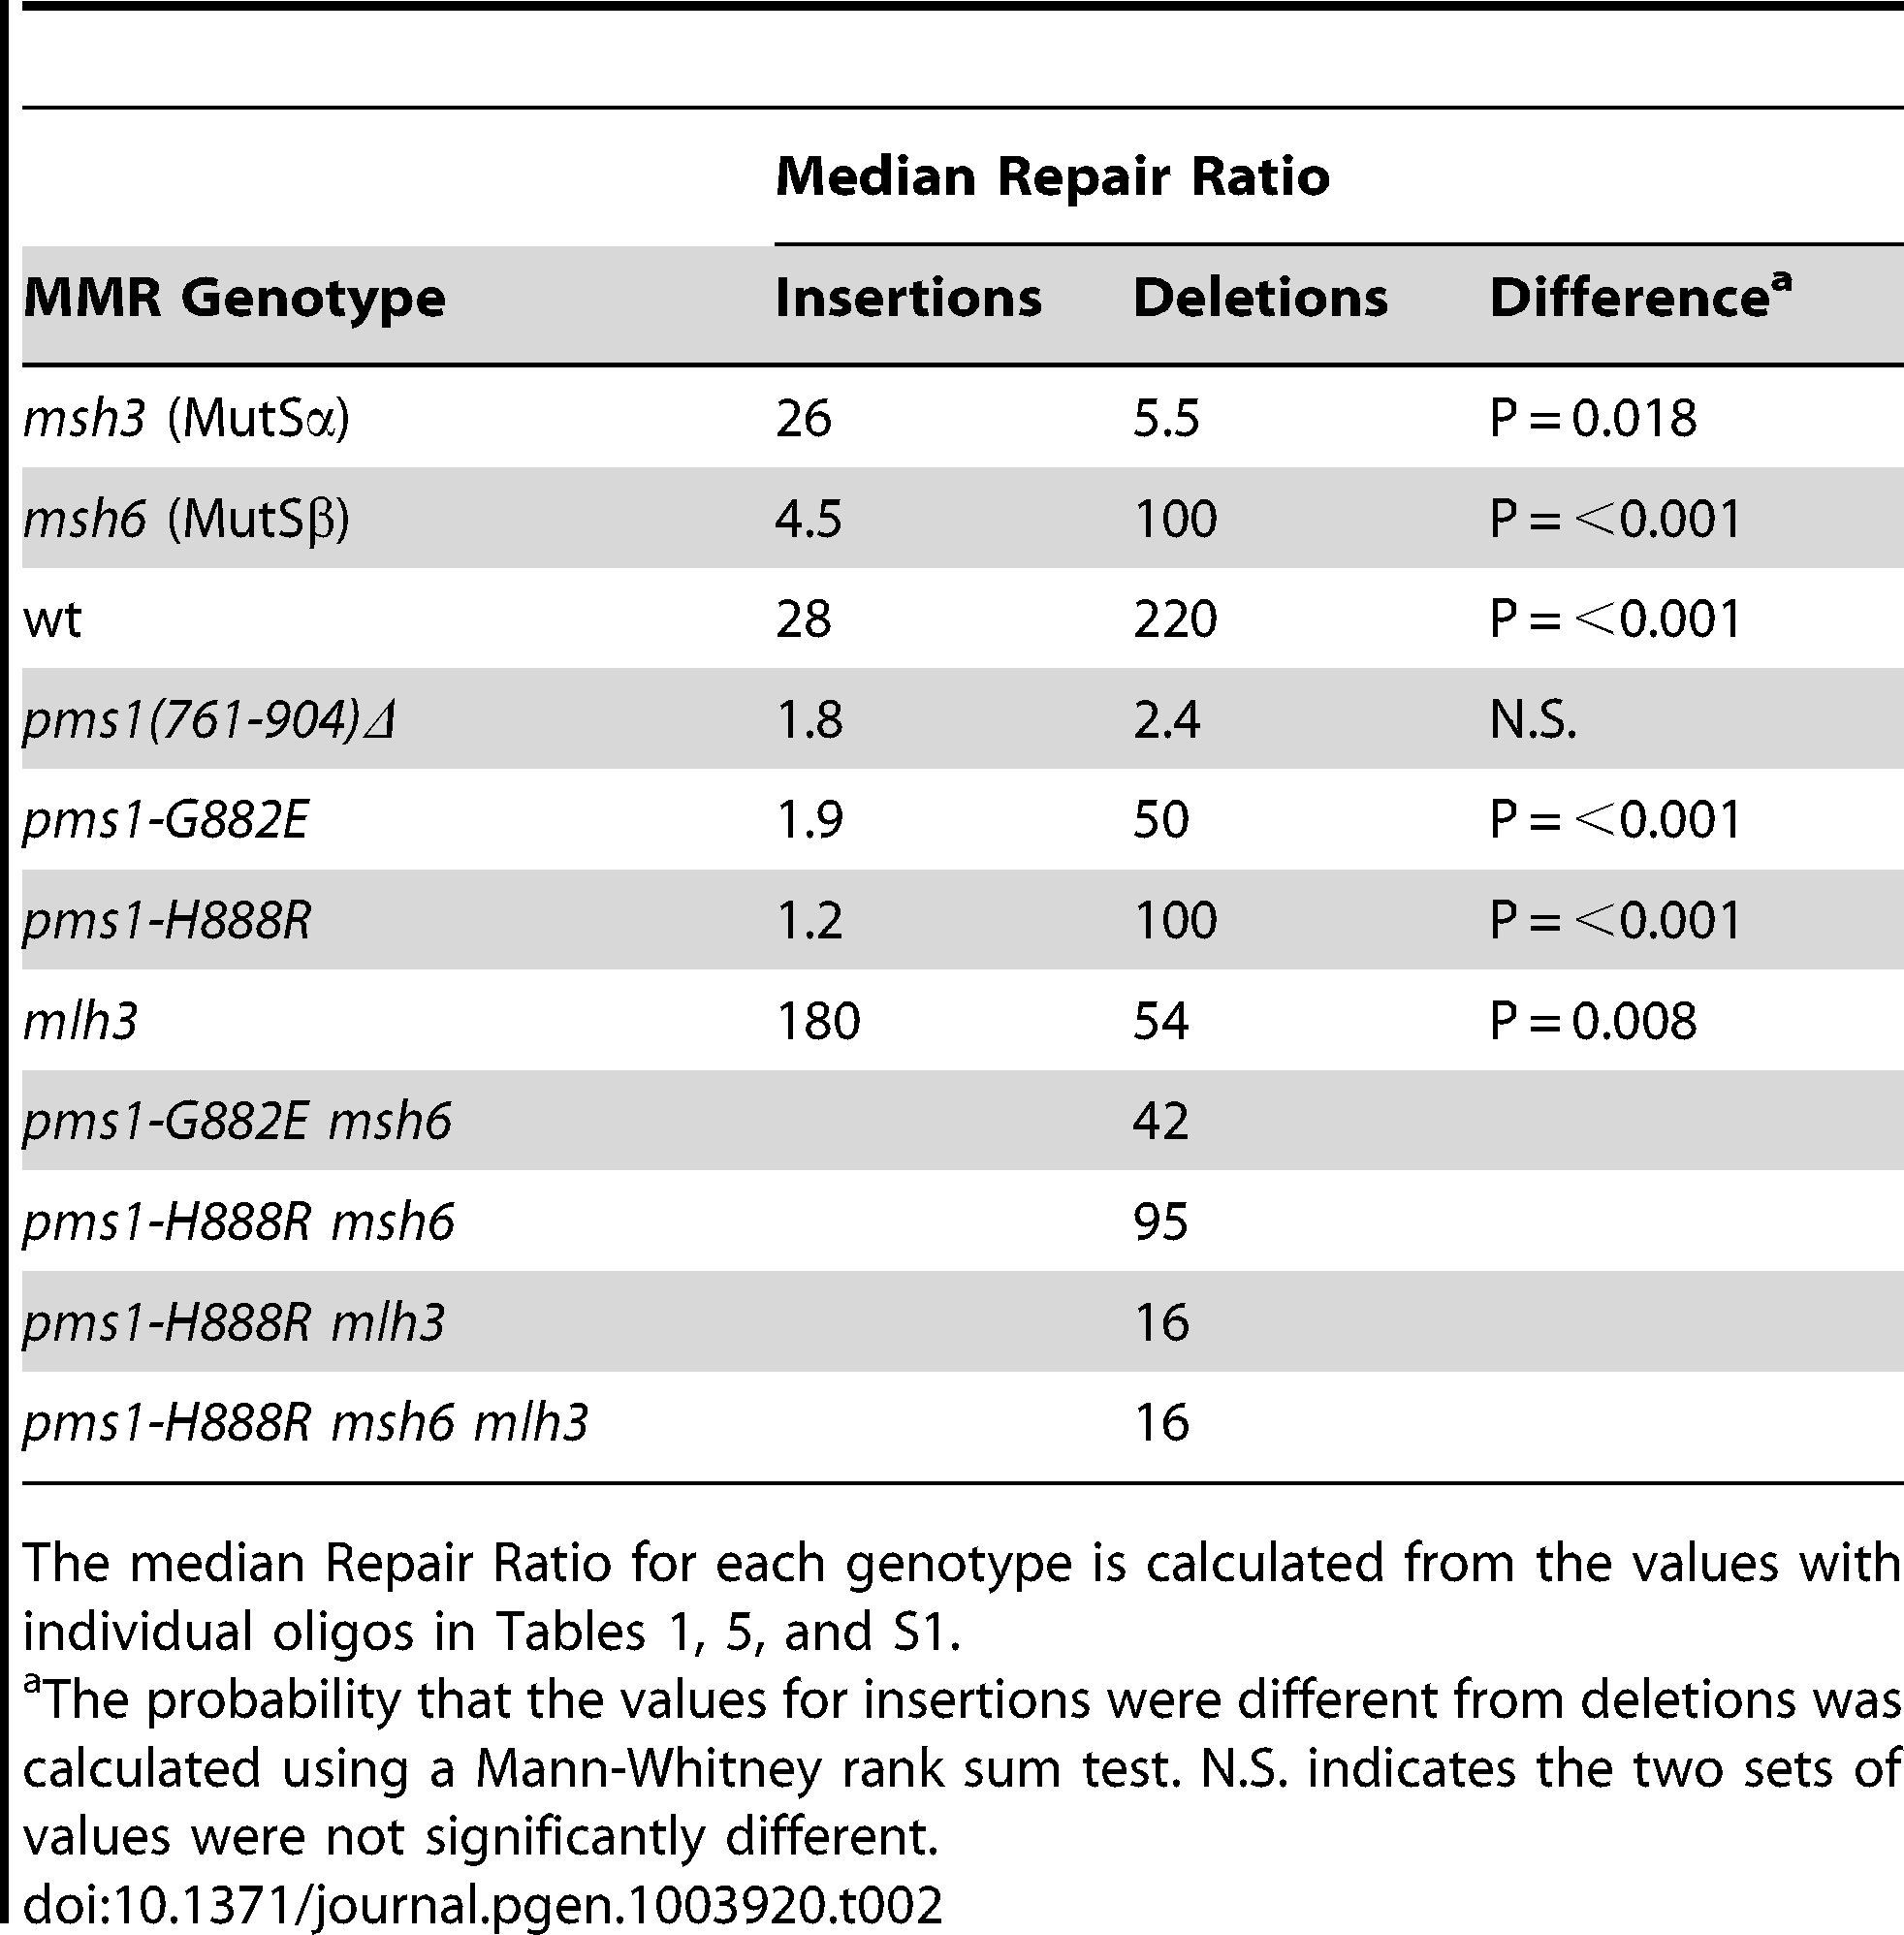 Median Repair Ratios for 2-nt in/del mismatches.